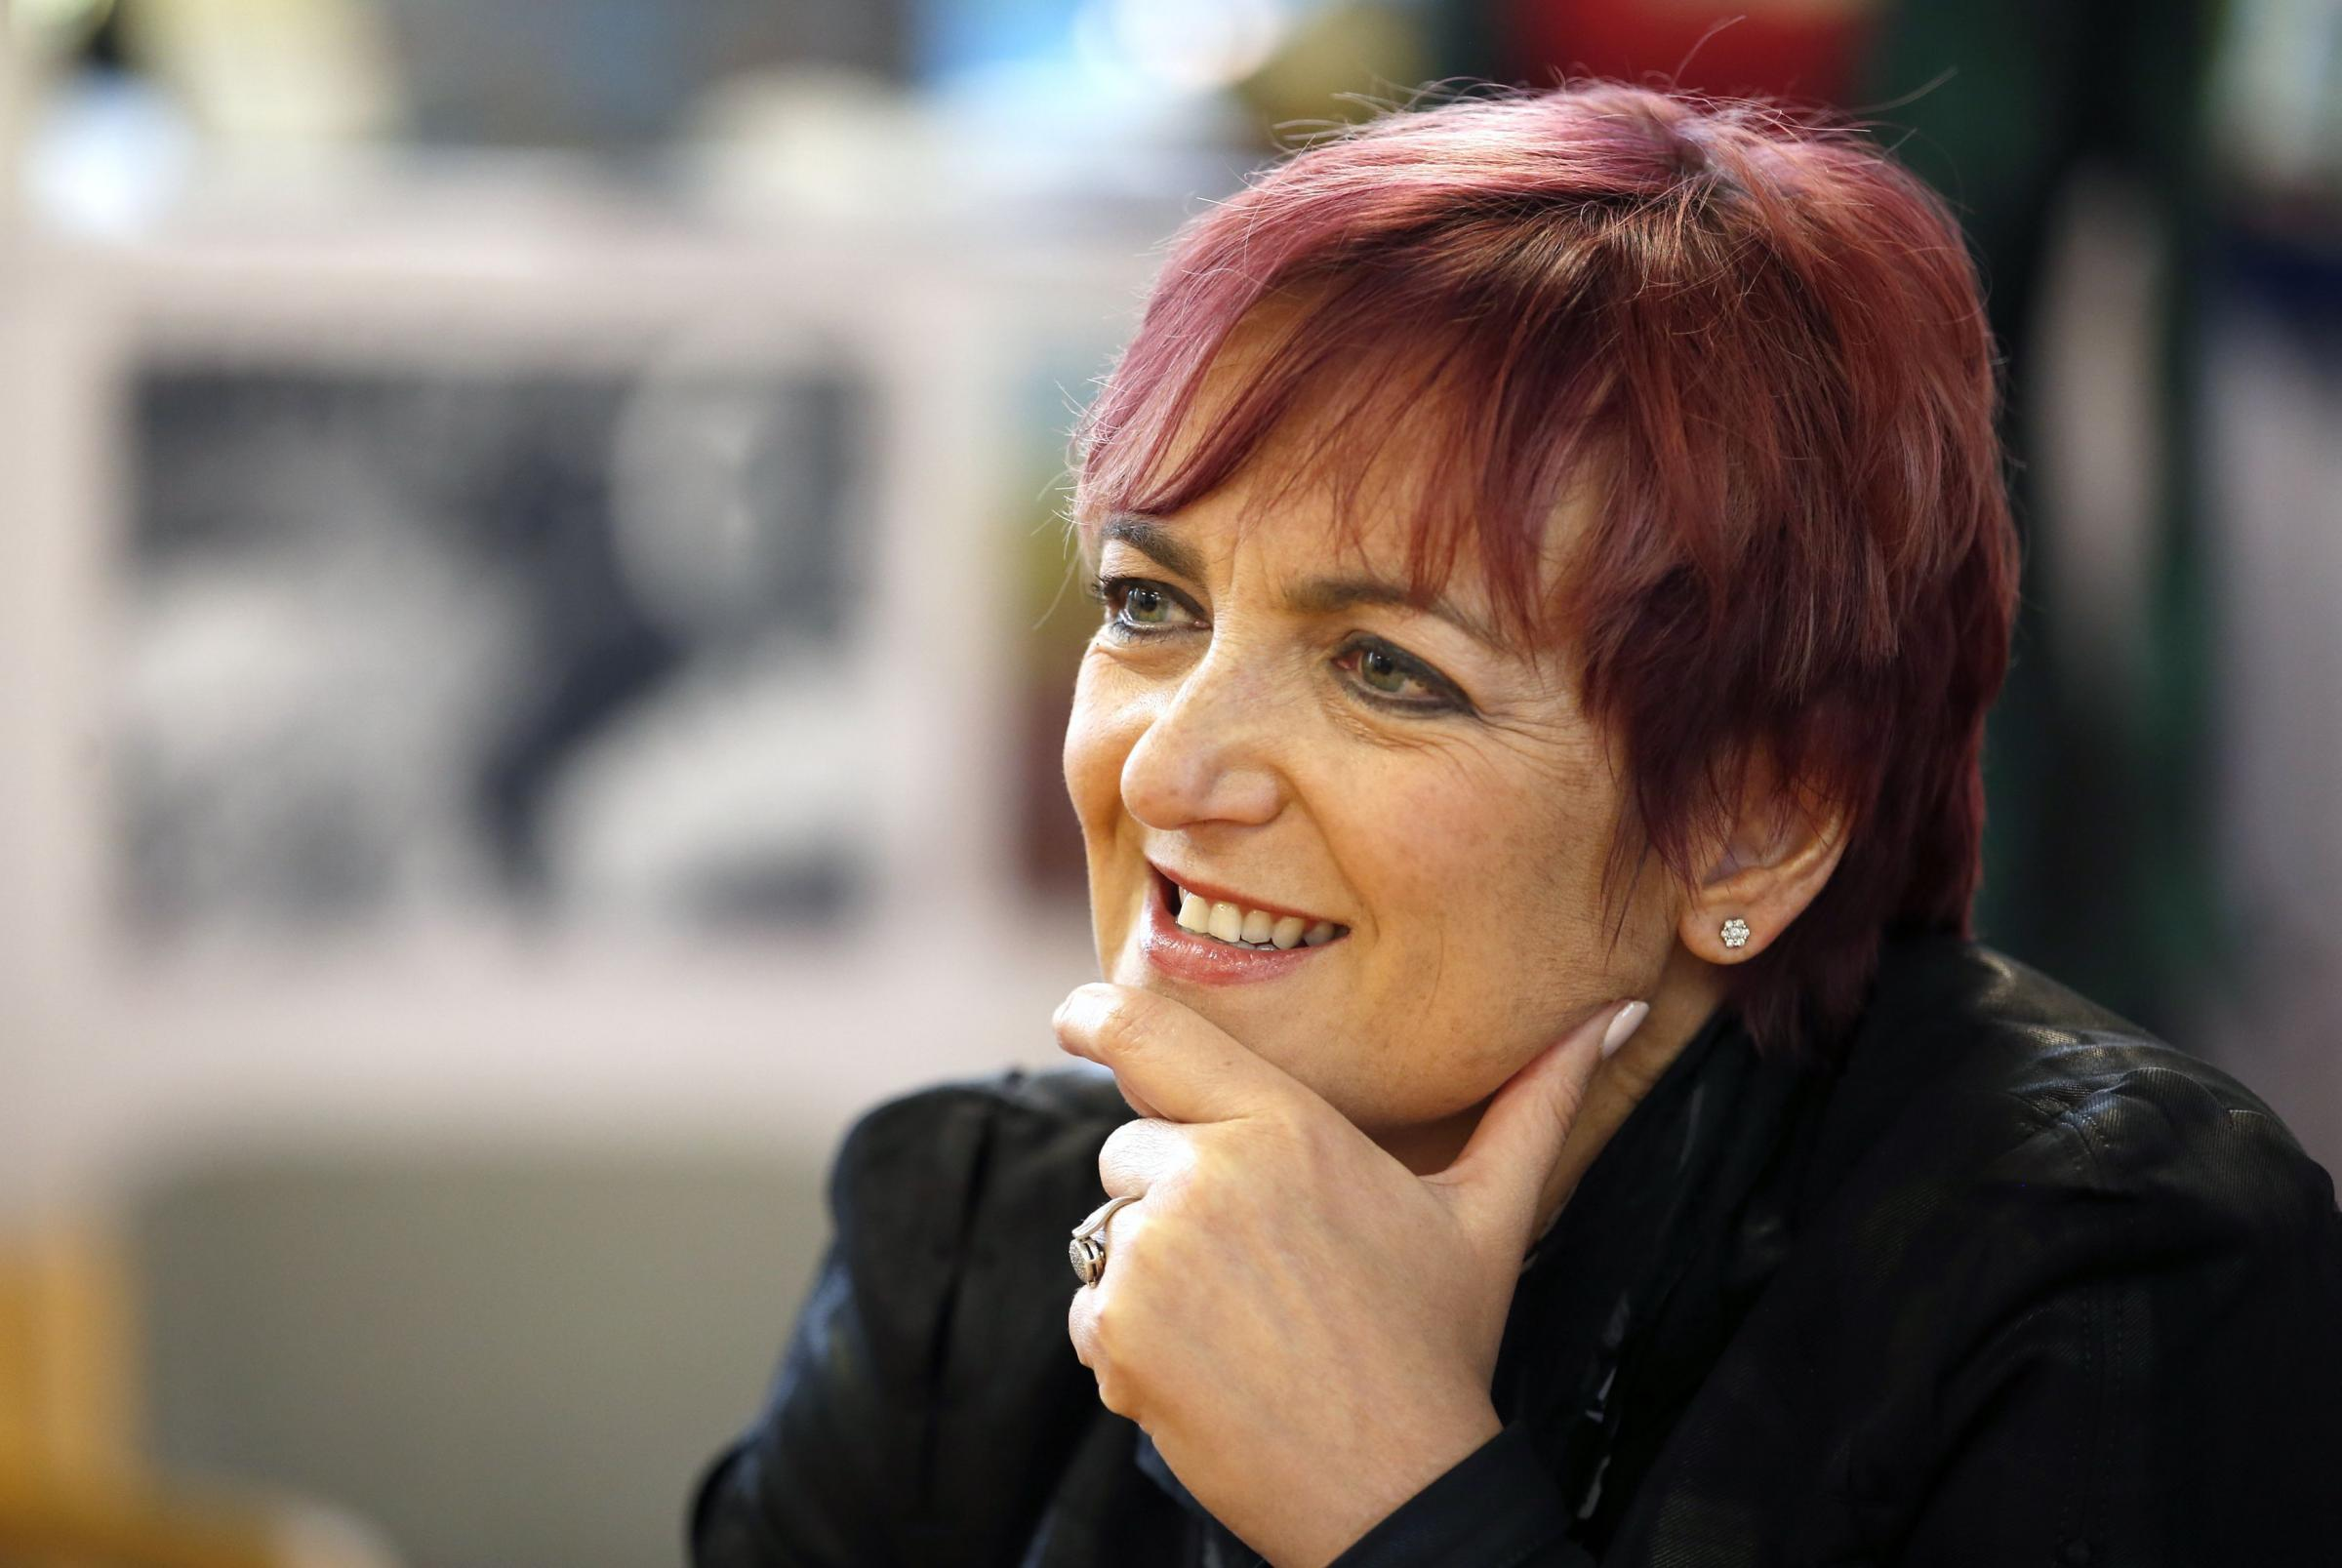 Equalities Minister Angela Constance said appointments would still be based on merit